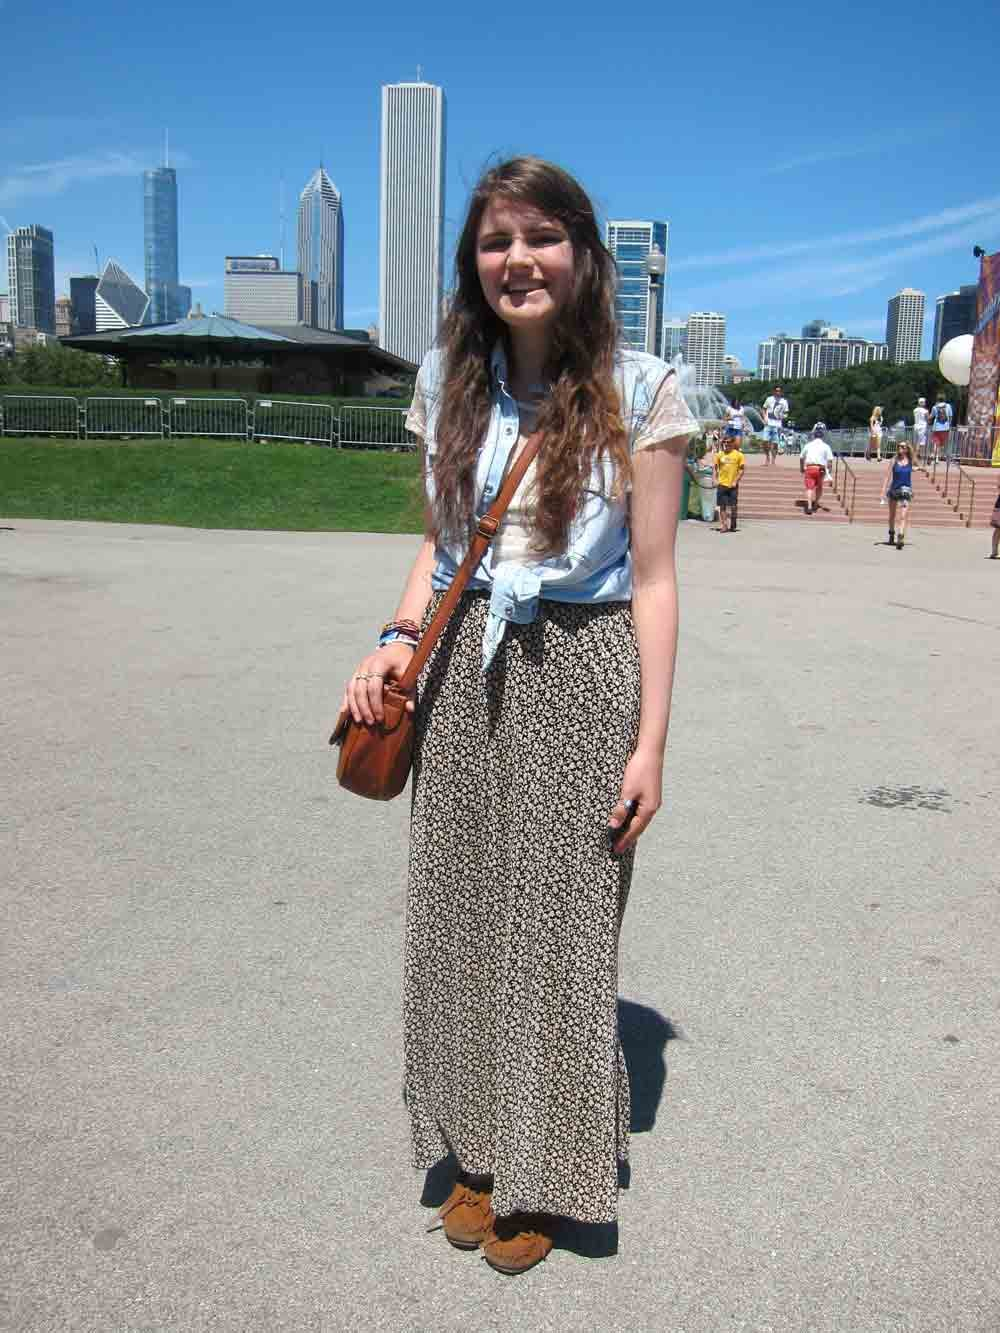 You can't buy style, and it seems Ellie didn't have to! Her look — which included a maxi skirt found at the Salvation Army and old moccasins — comprised items found and borrowed, like her mother's denim vest.